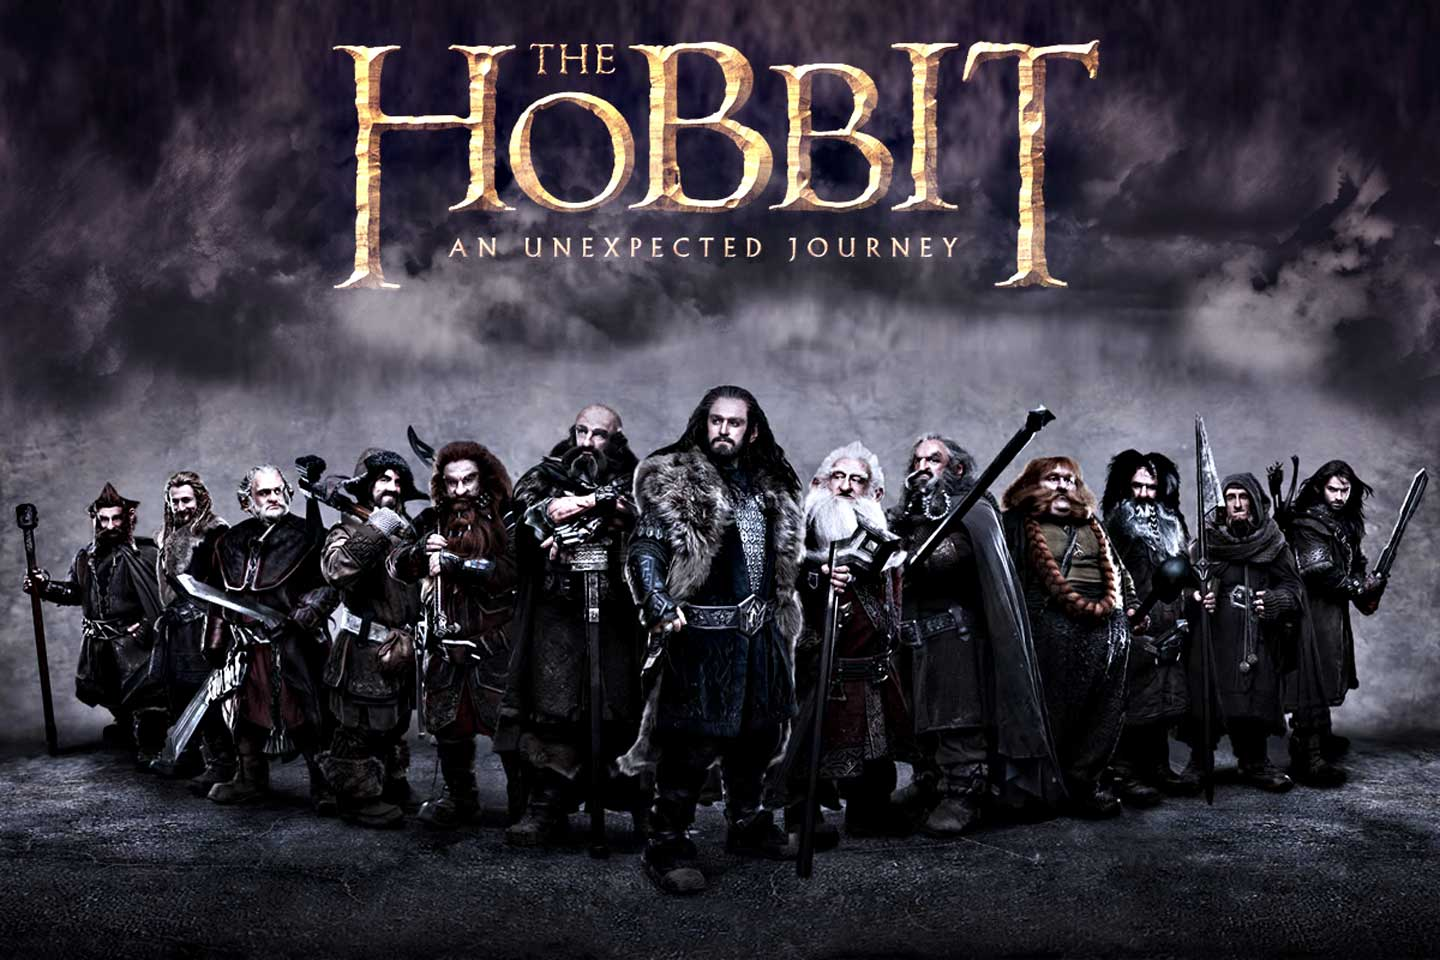 http://1.bp.blogspot.com/-vwH-bpuWNKs/T3lt52_nSXI/AAAAAAAAAfk/hZbvn9iFRlc/s1600/The-Hobbit-movies-wallpaper.jpg